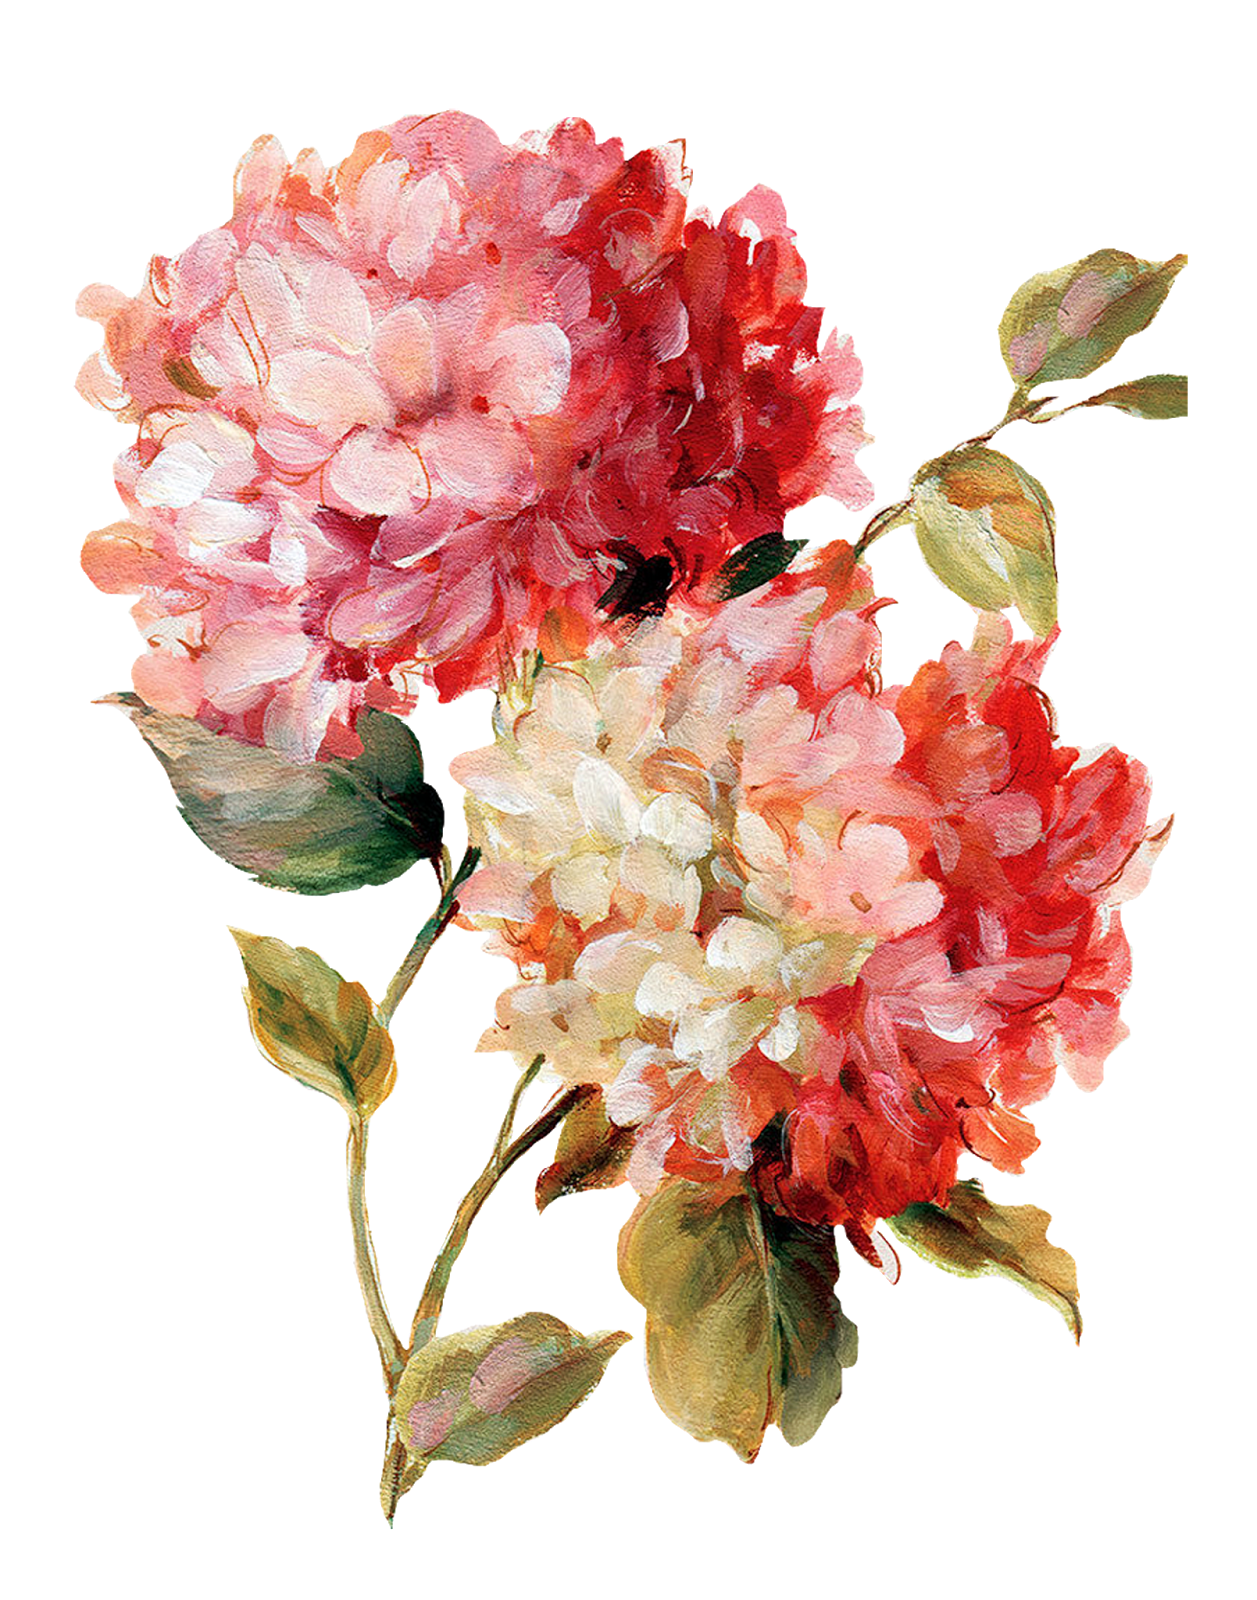 Water paint png. Decoupage flower painting pattern